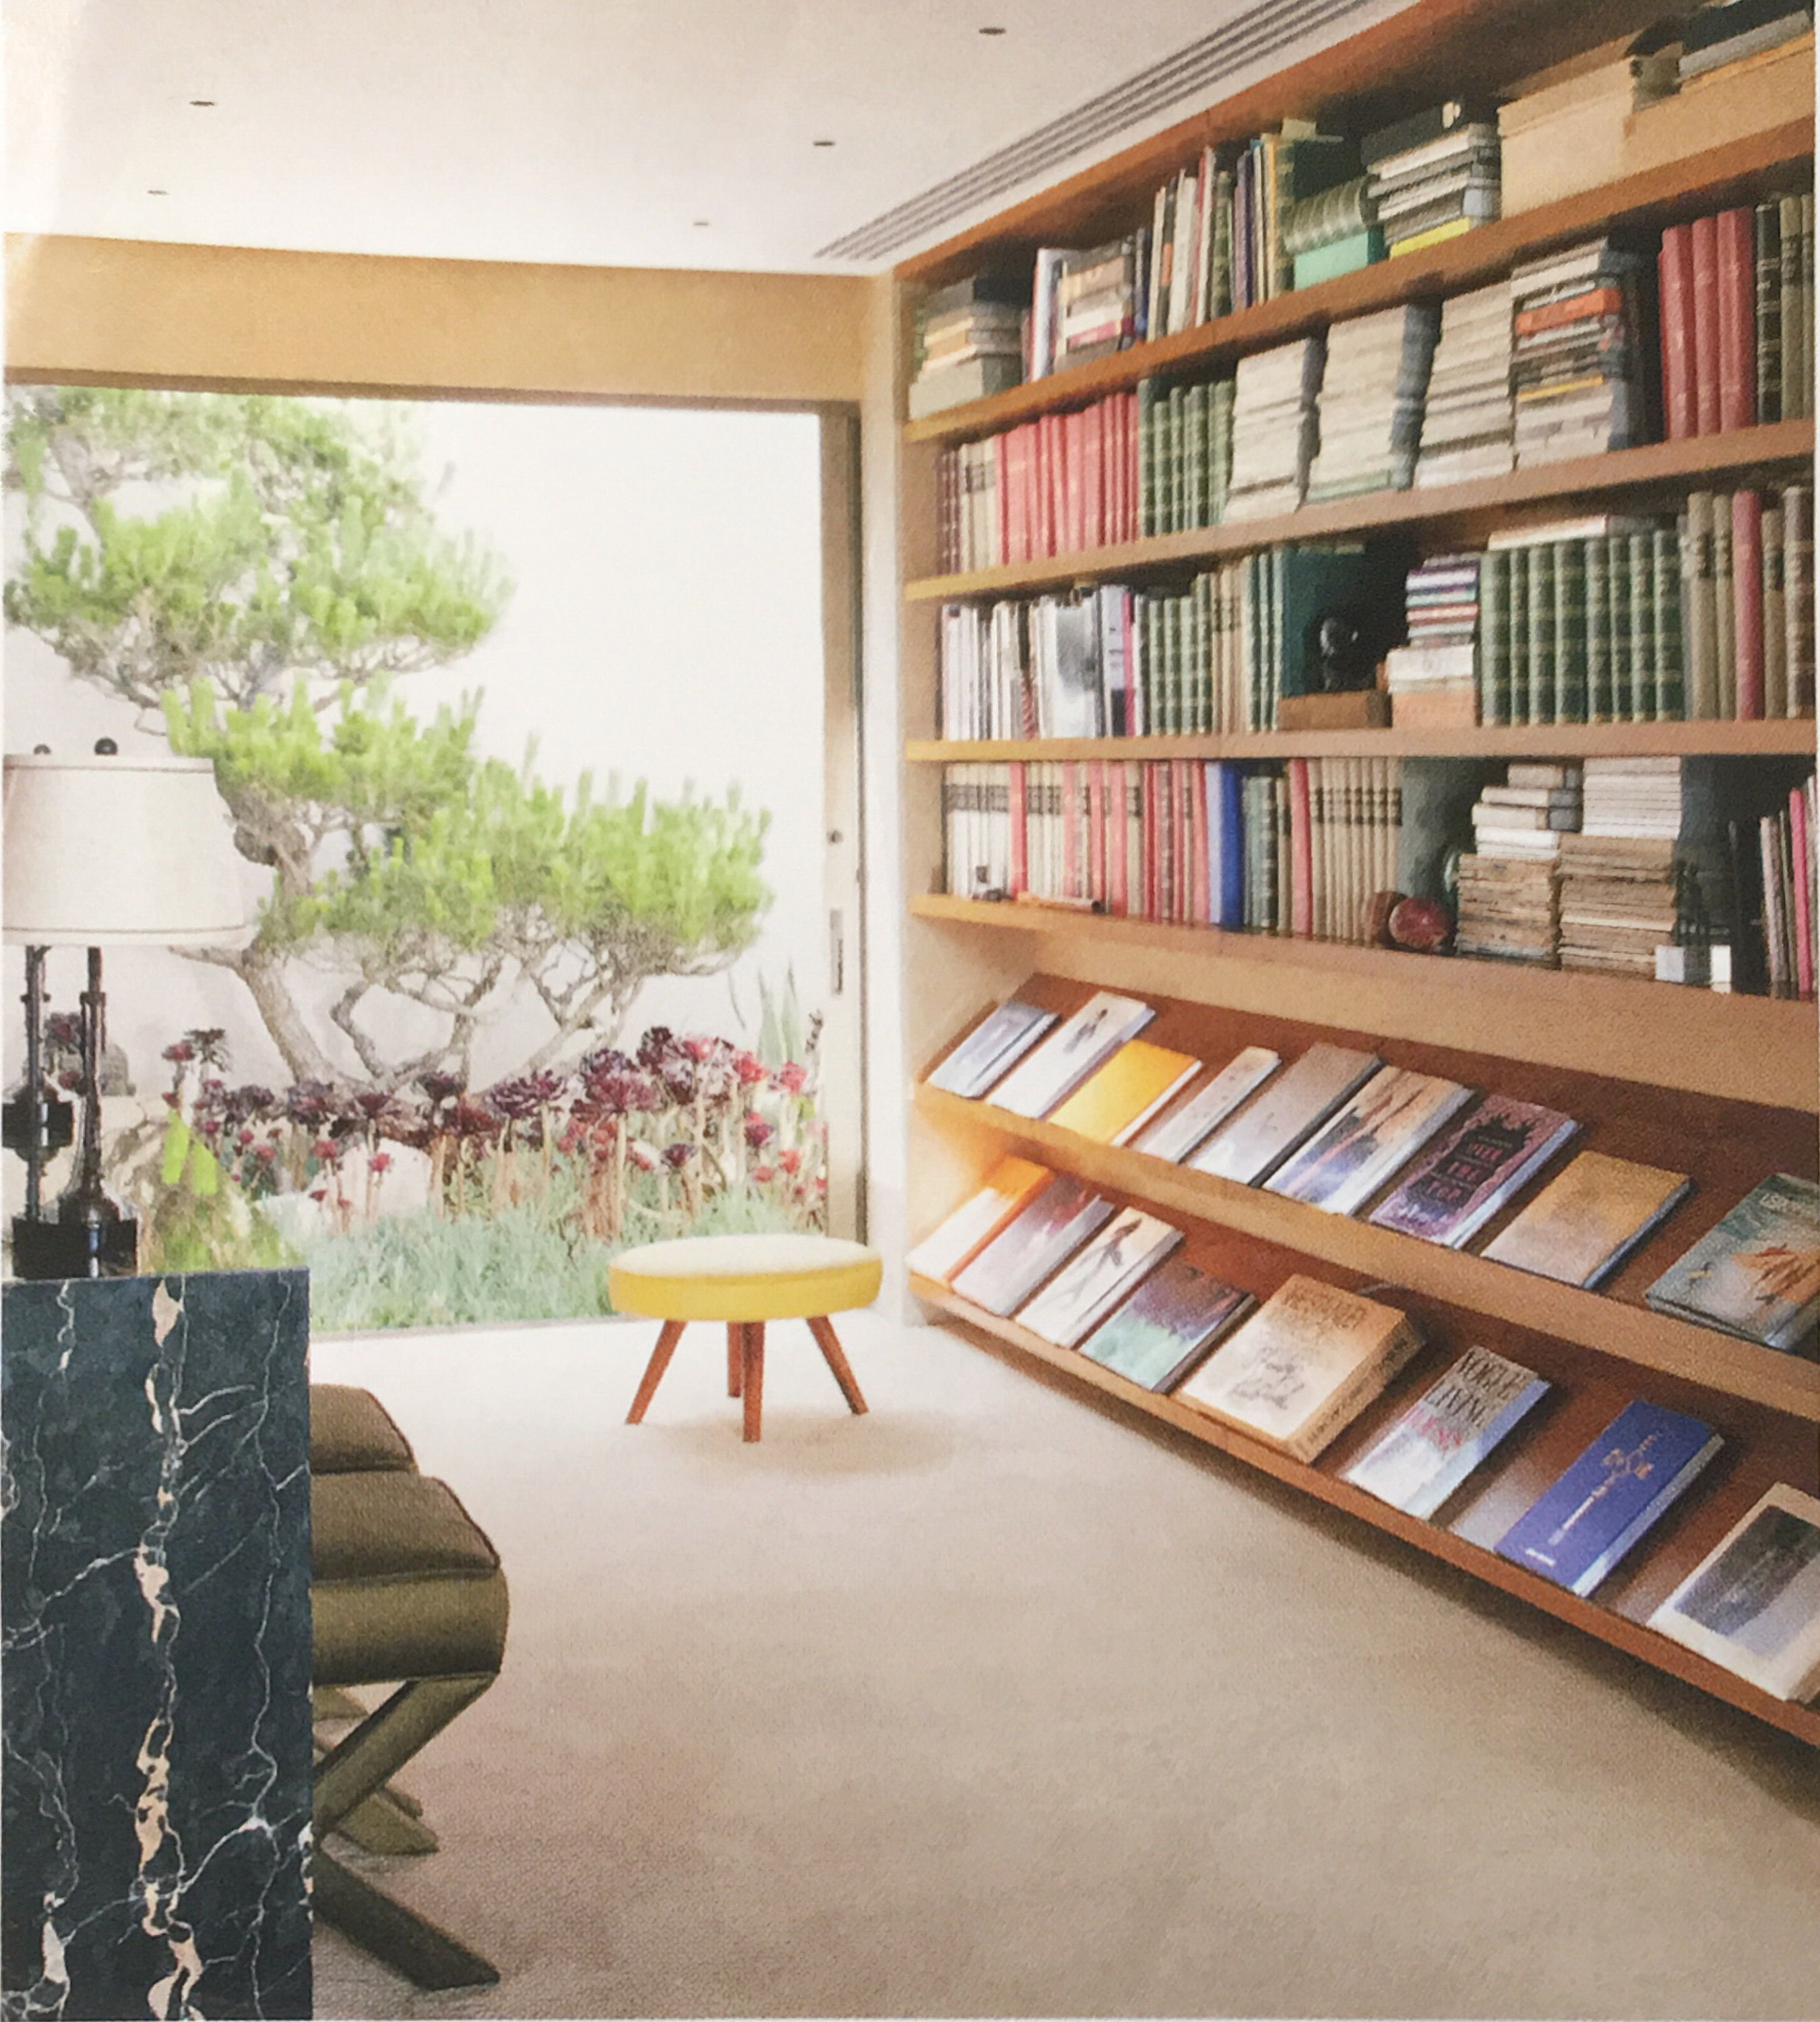 Slanted Book Display Inspire Home Libraries